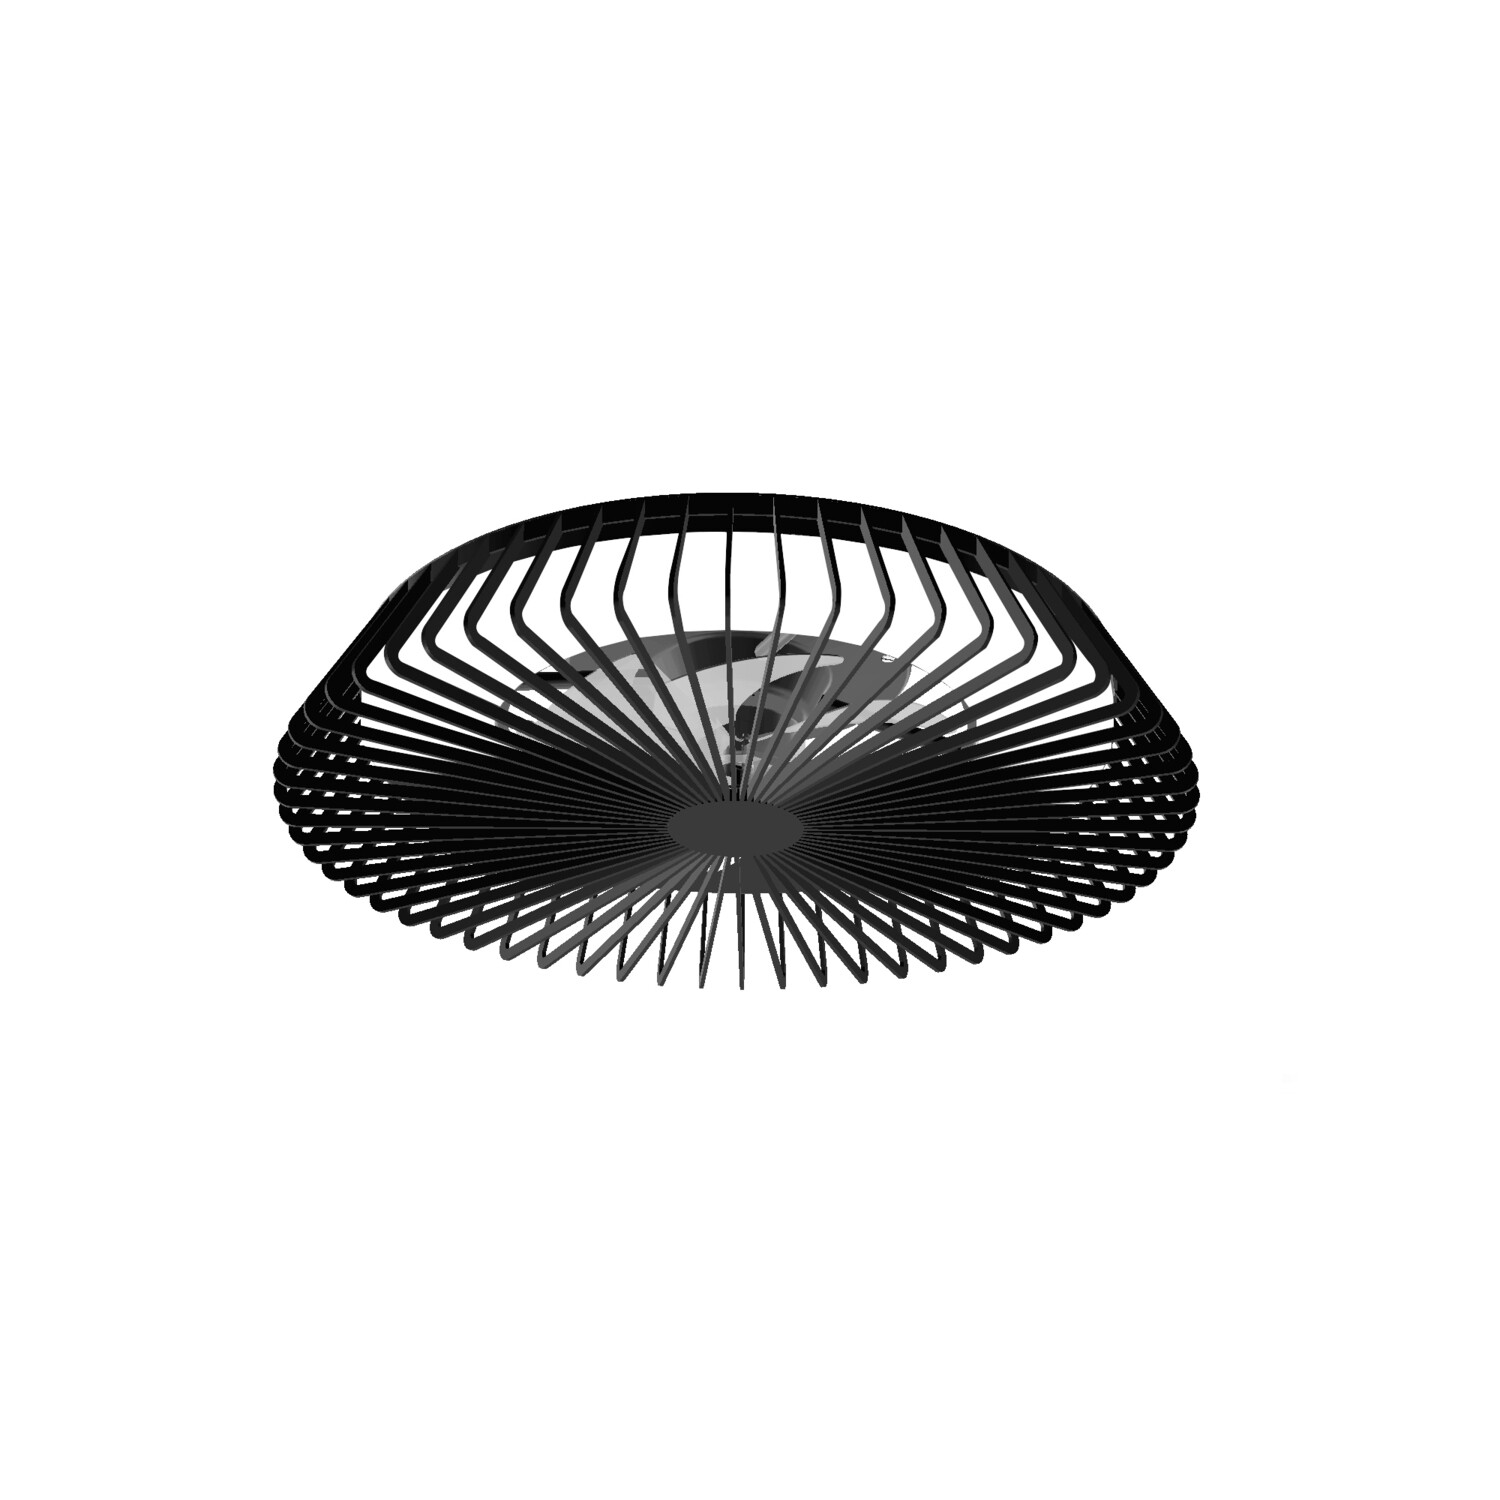 Himalaya 70W LED Dimmable Ceiling Light With Built-In 30W DC Fan, c/w Remote Control and APP Control, 3000lm, Black, 5yrs Warranty